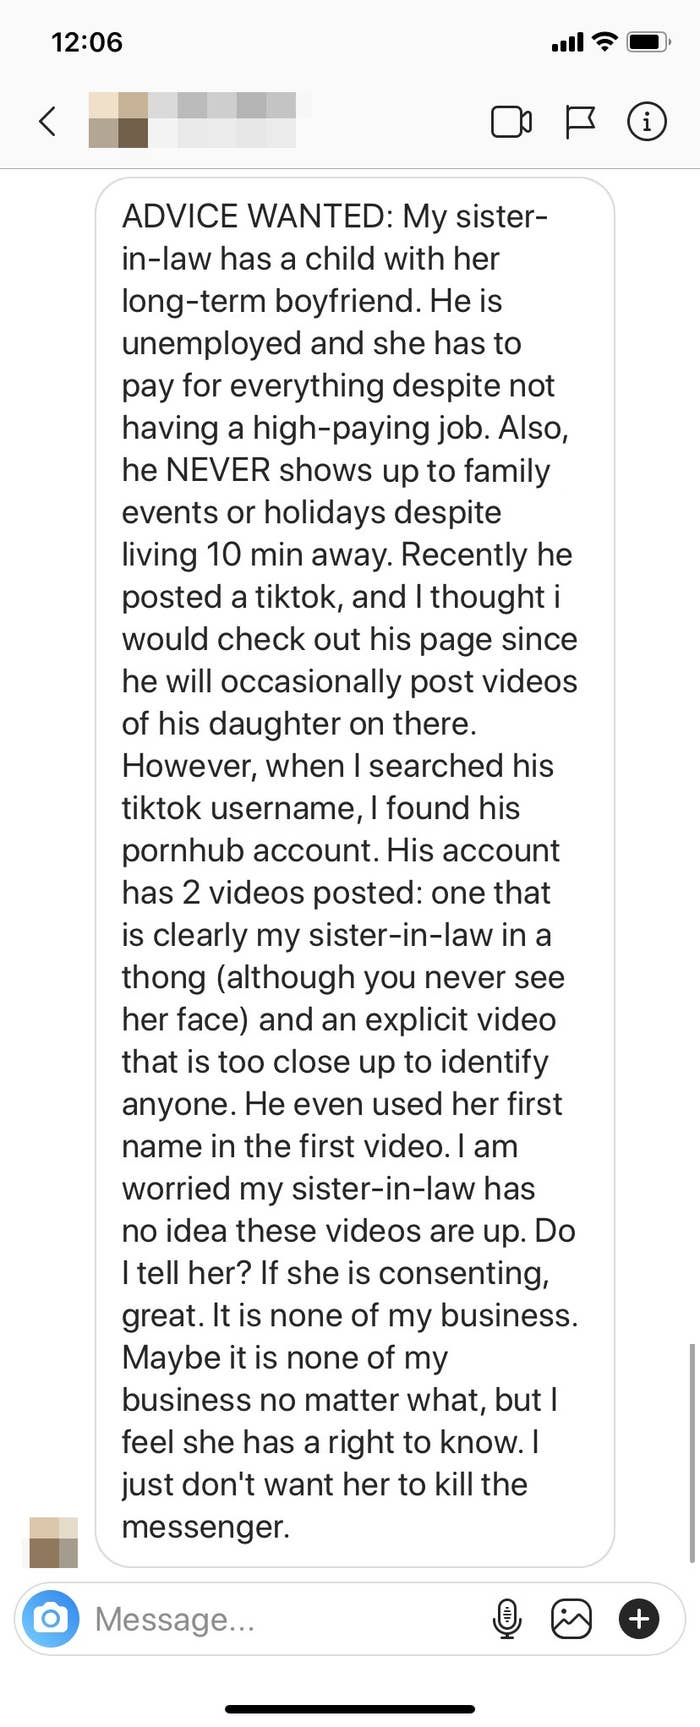 Screenshot of an Instagram DM: A woman stumbled upon a video of her sister-in-law on PornHub. The boyfriend has a history of shitty behavior, and the letter writer suspects that maybe the sister-in-law doesn't know about these videos. Should she tell her?